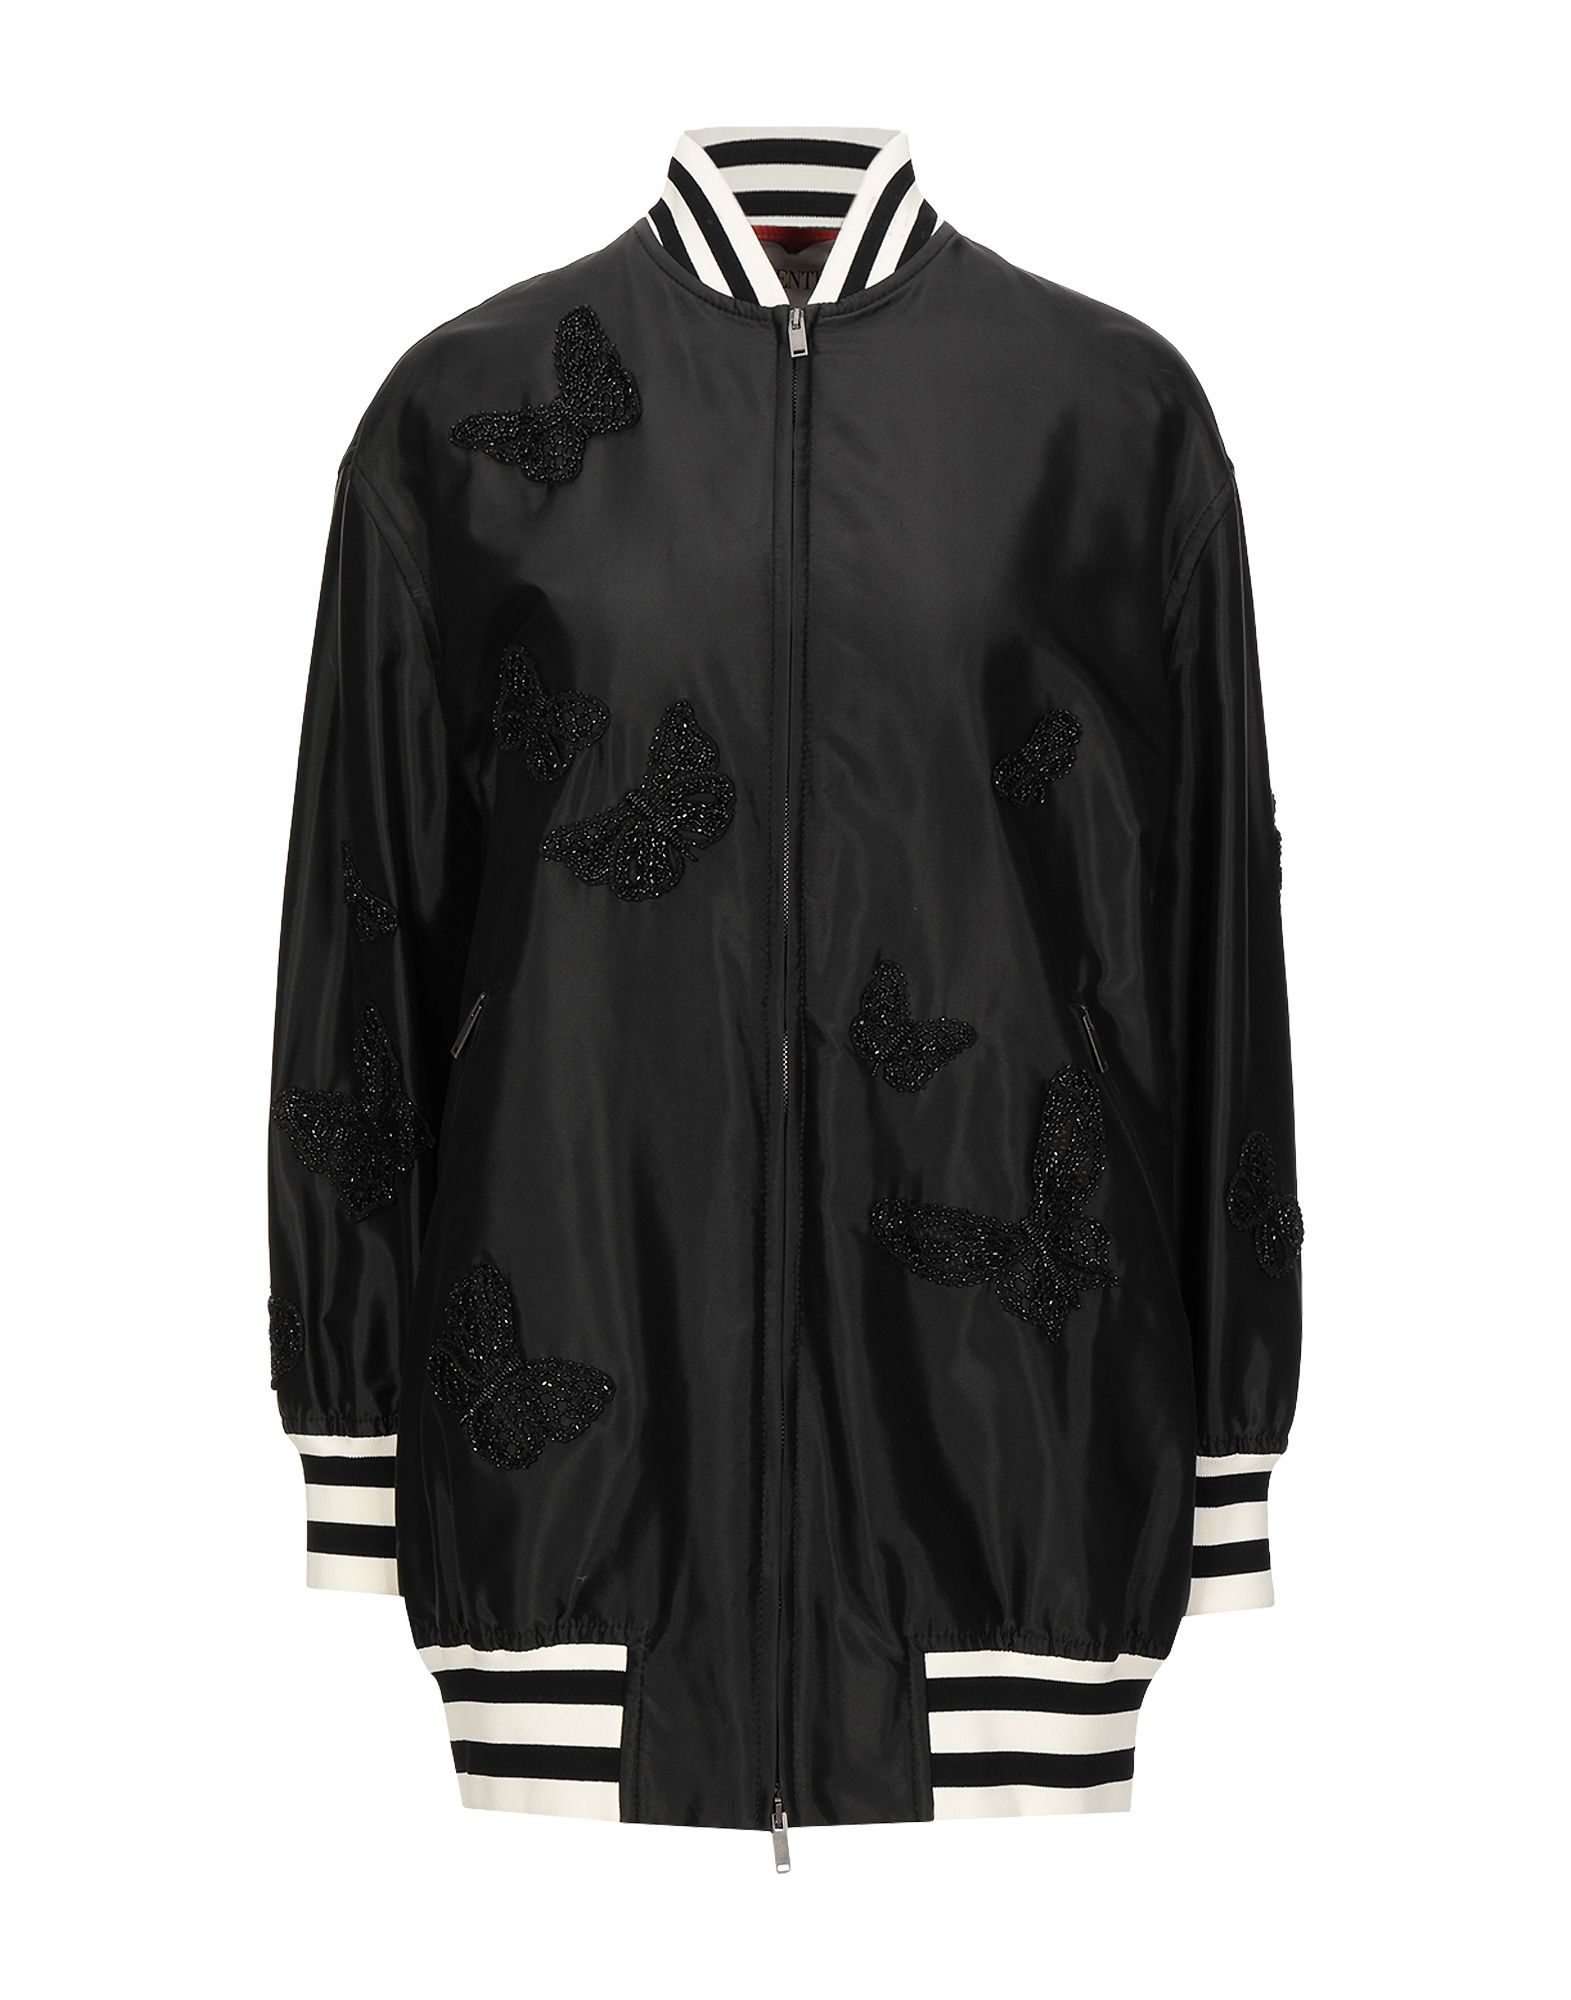 VALENTINO Jackets - Item 41941531